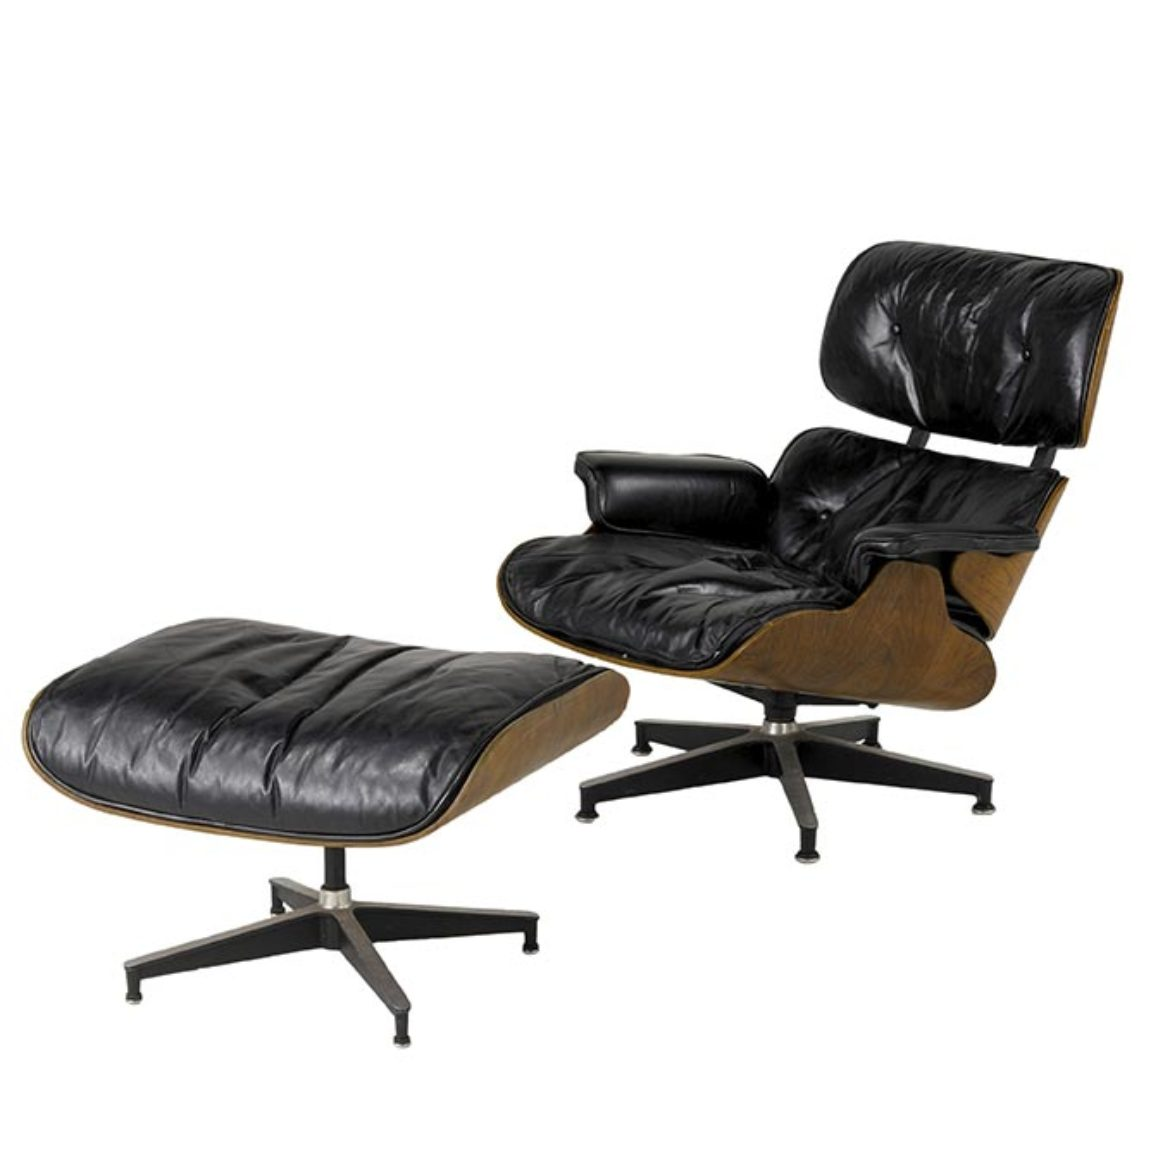 Talie jane interiors the iconic eames chair Iconic eames chair